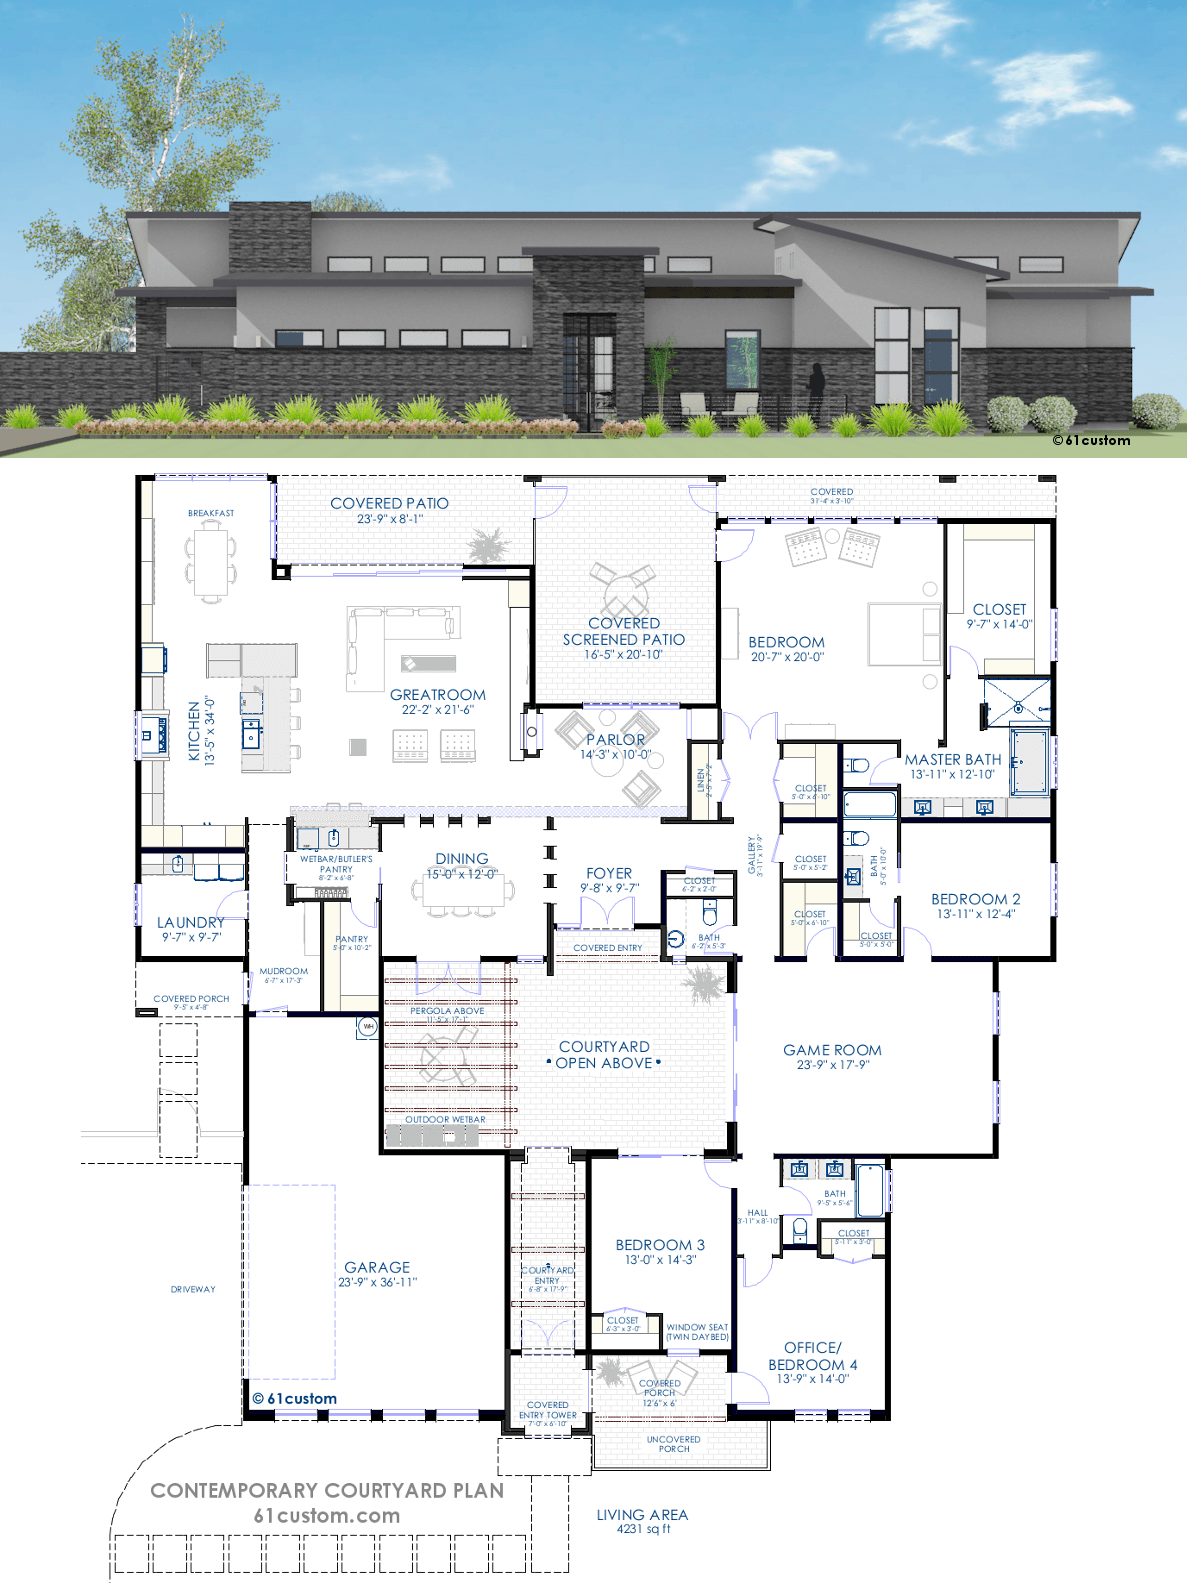 courtyard house plan contemporary courtyard house plan 61custom modern house plans 8787